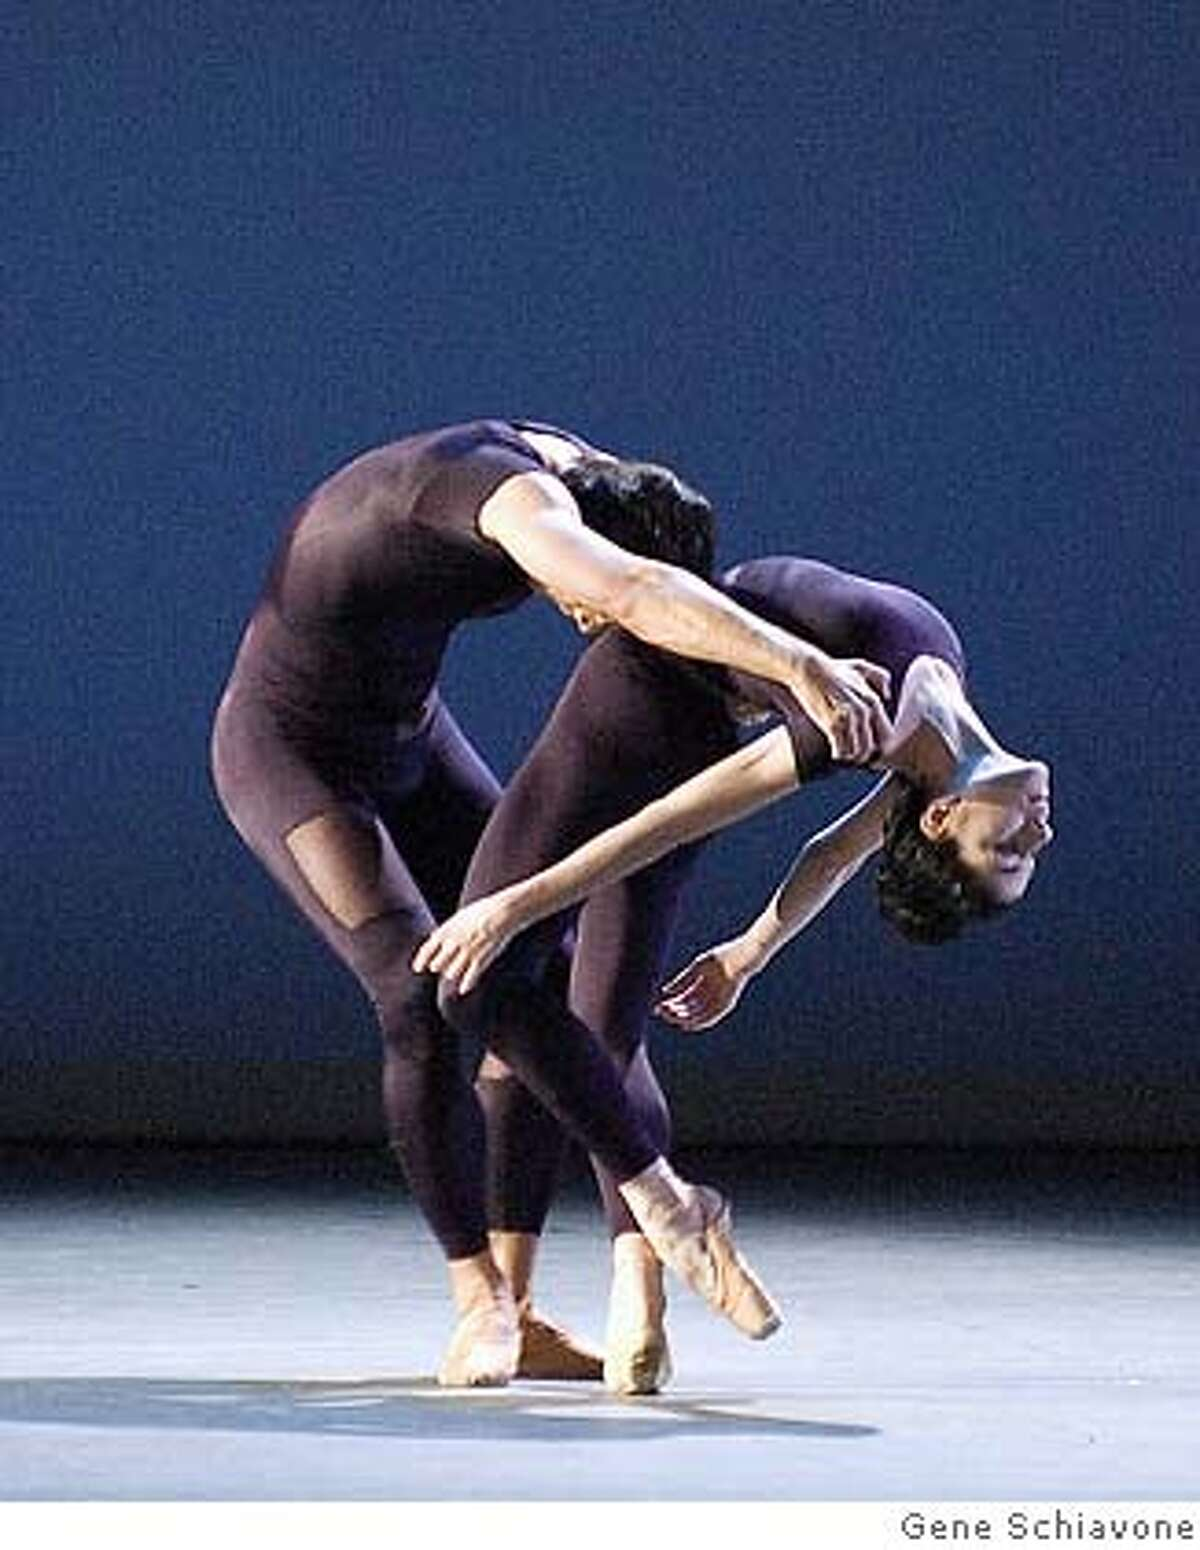 Pictured: Kristi Boone and Jared Matthews of American Ballet Theatre perform in Jorma Elo's C. to C. (Close to Chuck) as part of Cal Performances programs November 7-11, 2007 . PHOTO: Rosalie O'Connor Ran on: 11-12-2007 Jared Matthews and Kristi Boone dance in Jorma Elos C. to C. (Close to Chuck) by the American Ballet Theatre.